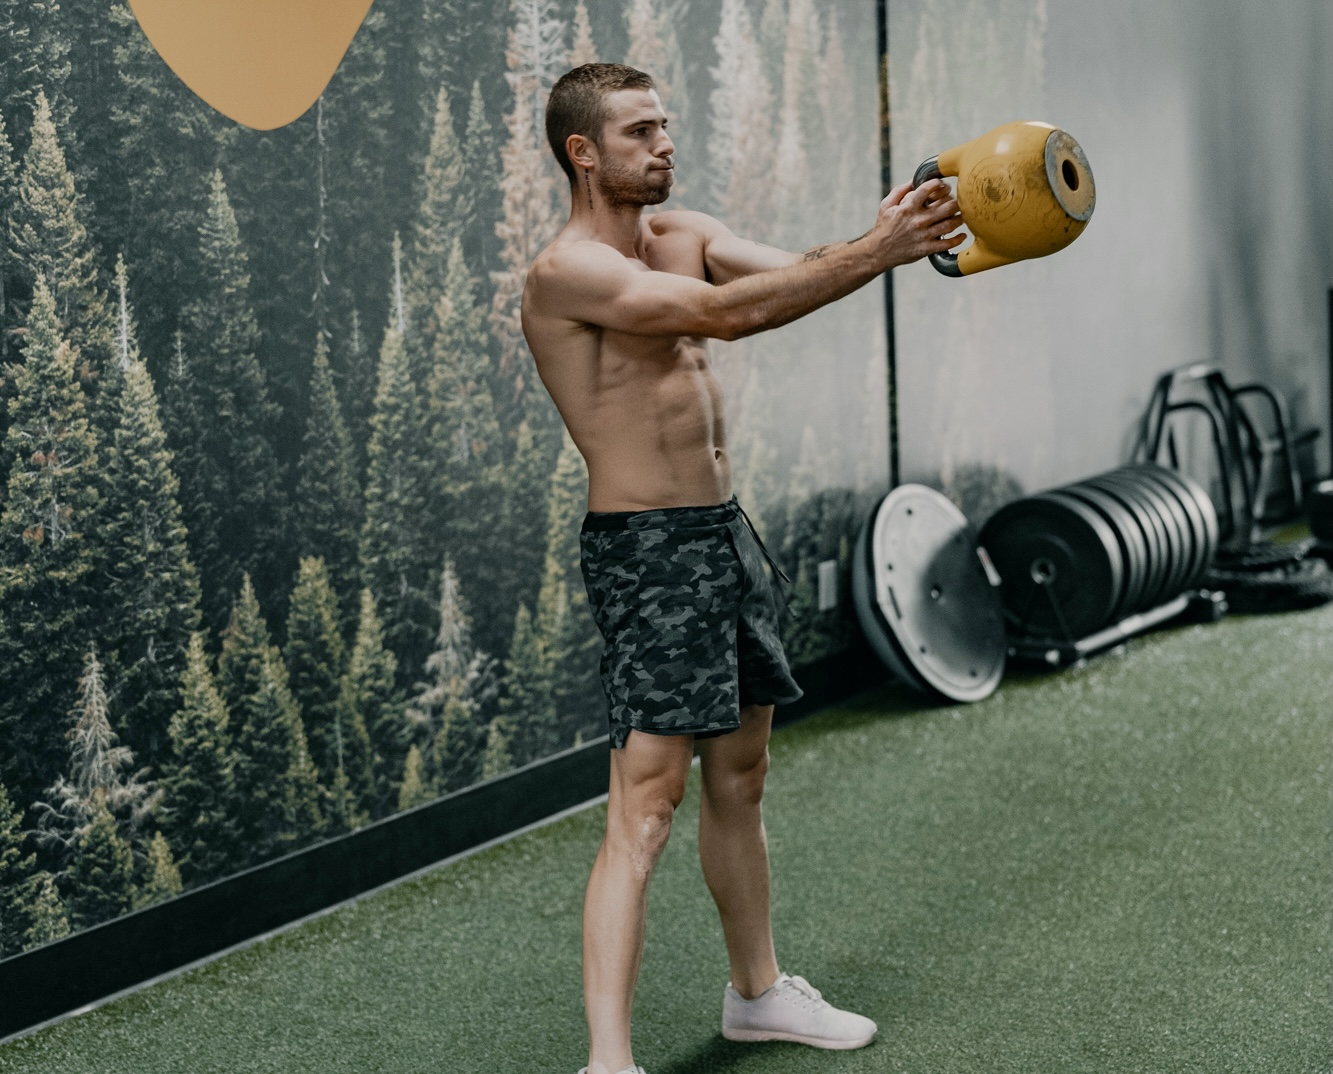 Kettlebell Workout: 4